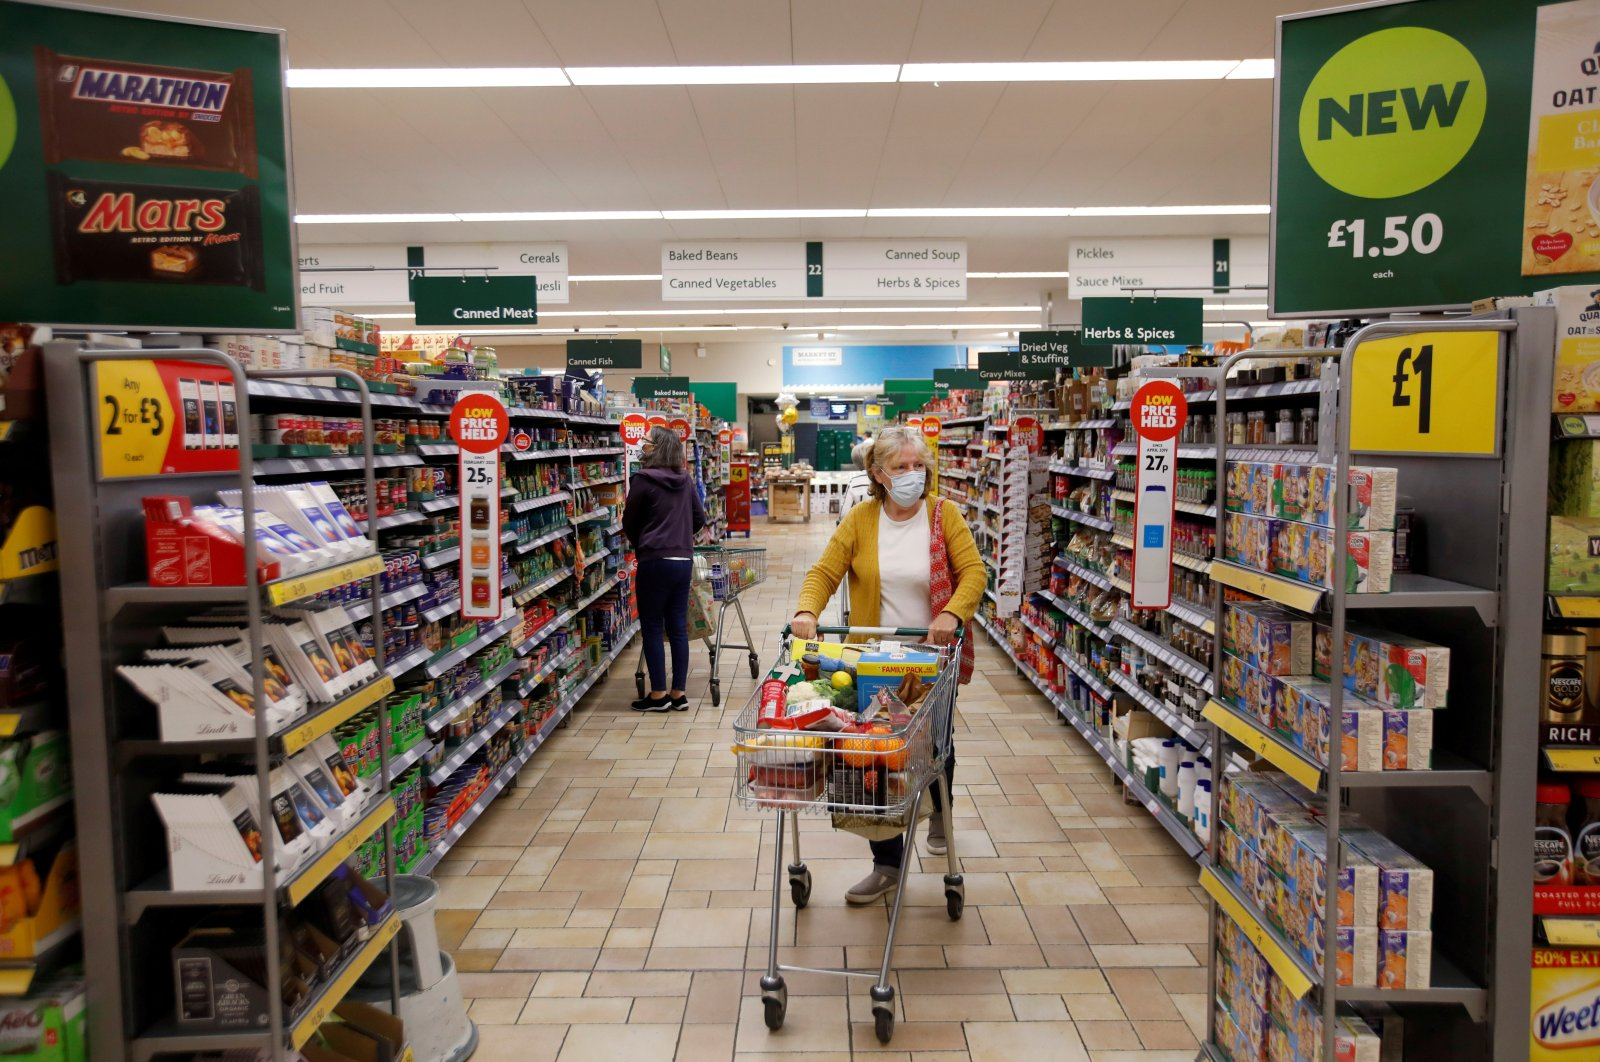 A customer wearing a protective face mask shops at a Morrisons store in St Albans, U.K., Sept. 10, 2020.  (Reuters Photo)